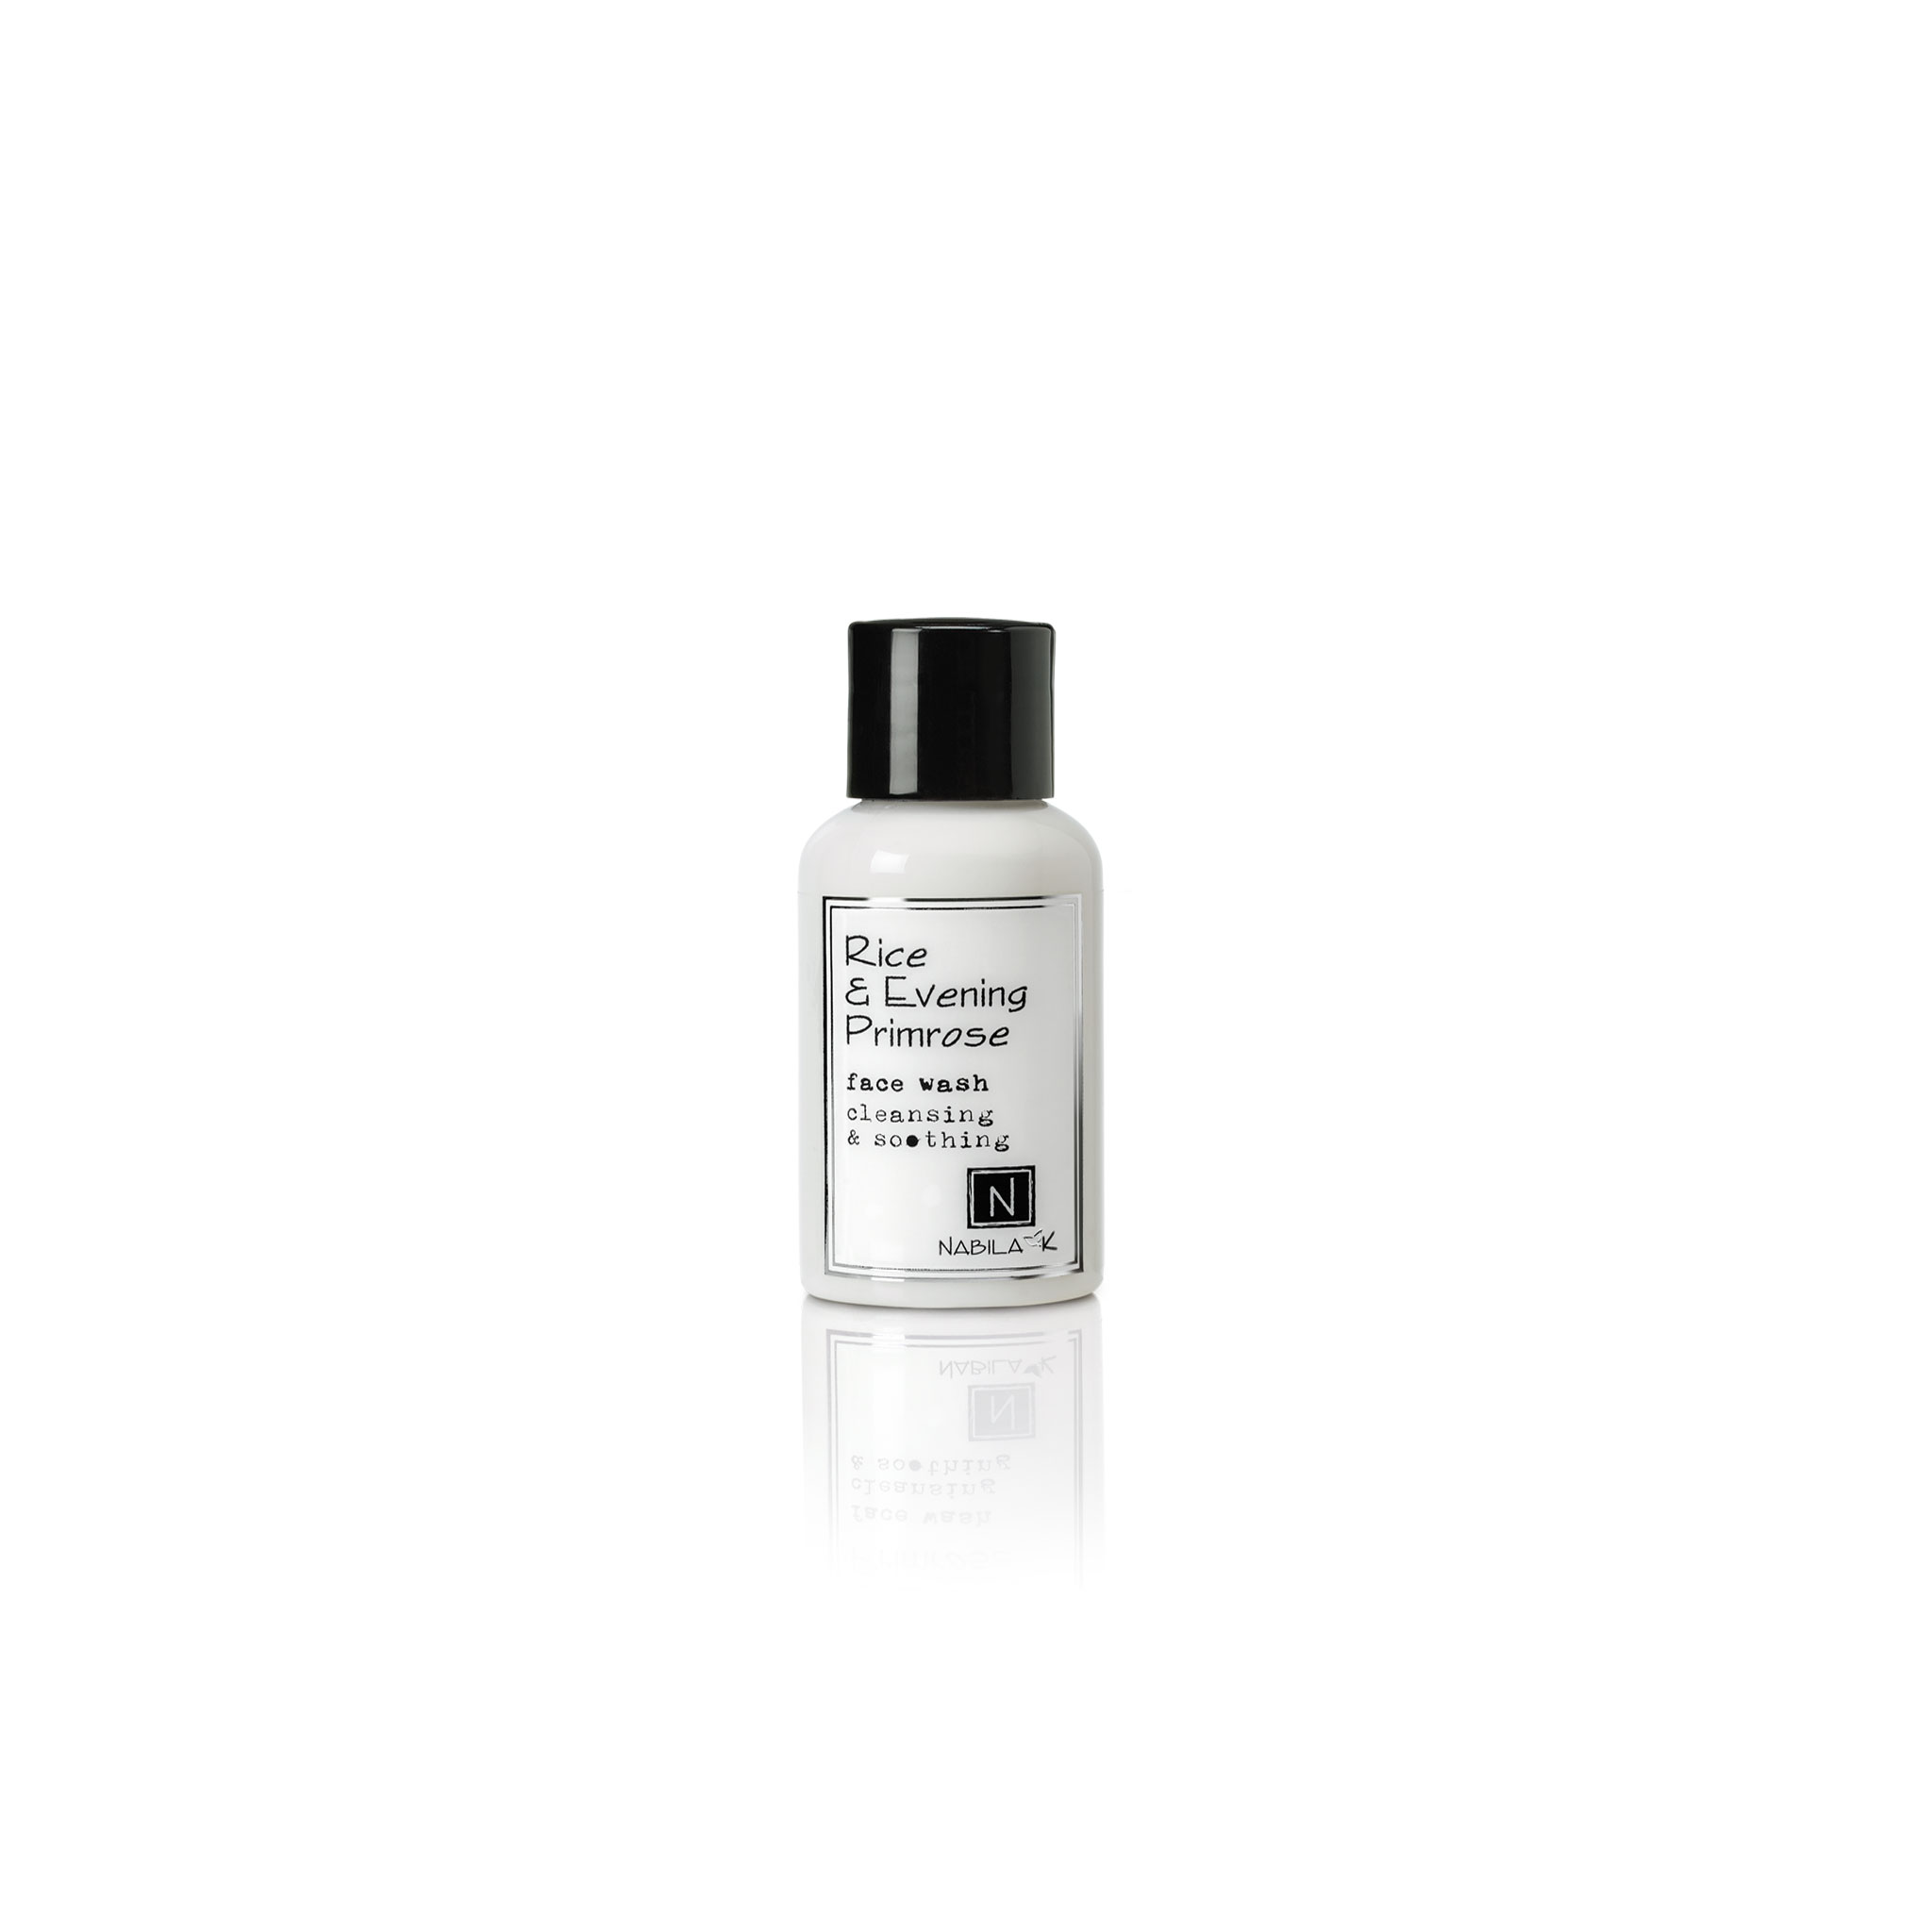 2.4oz of rice and evening primrose face wash cleansing and soothing